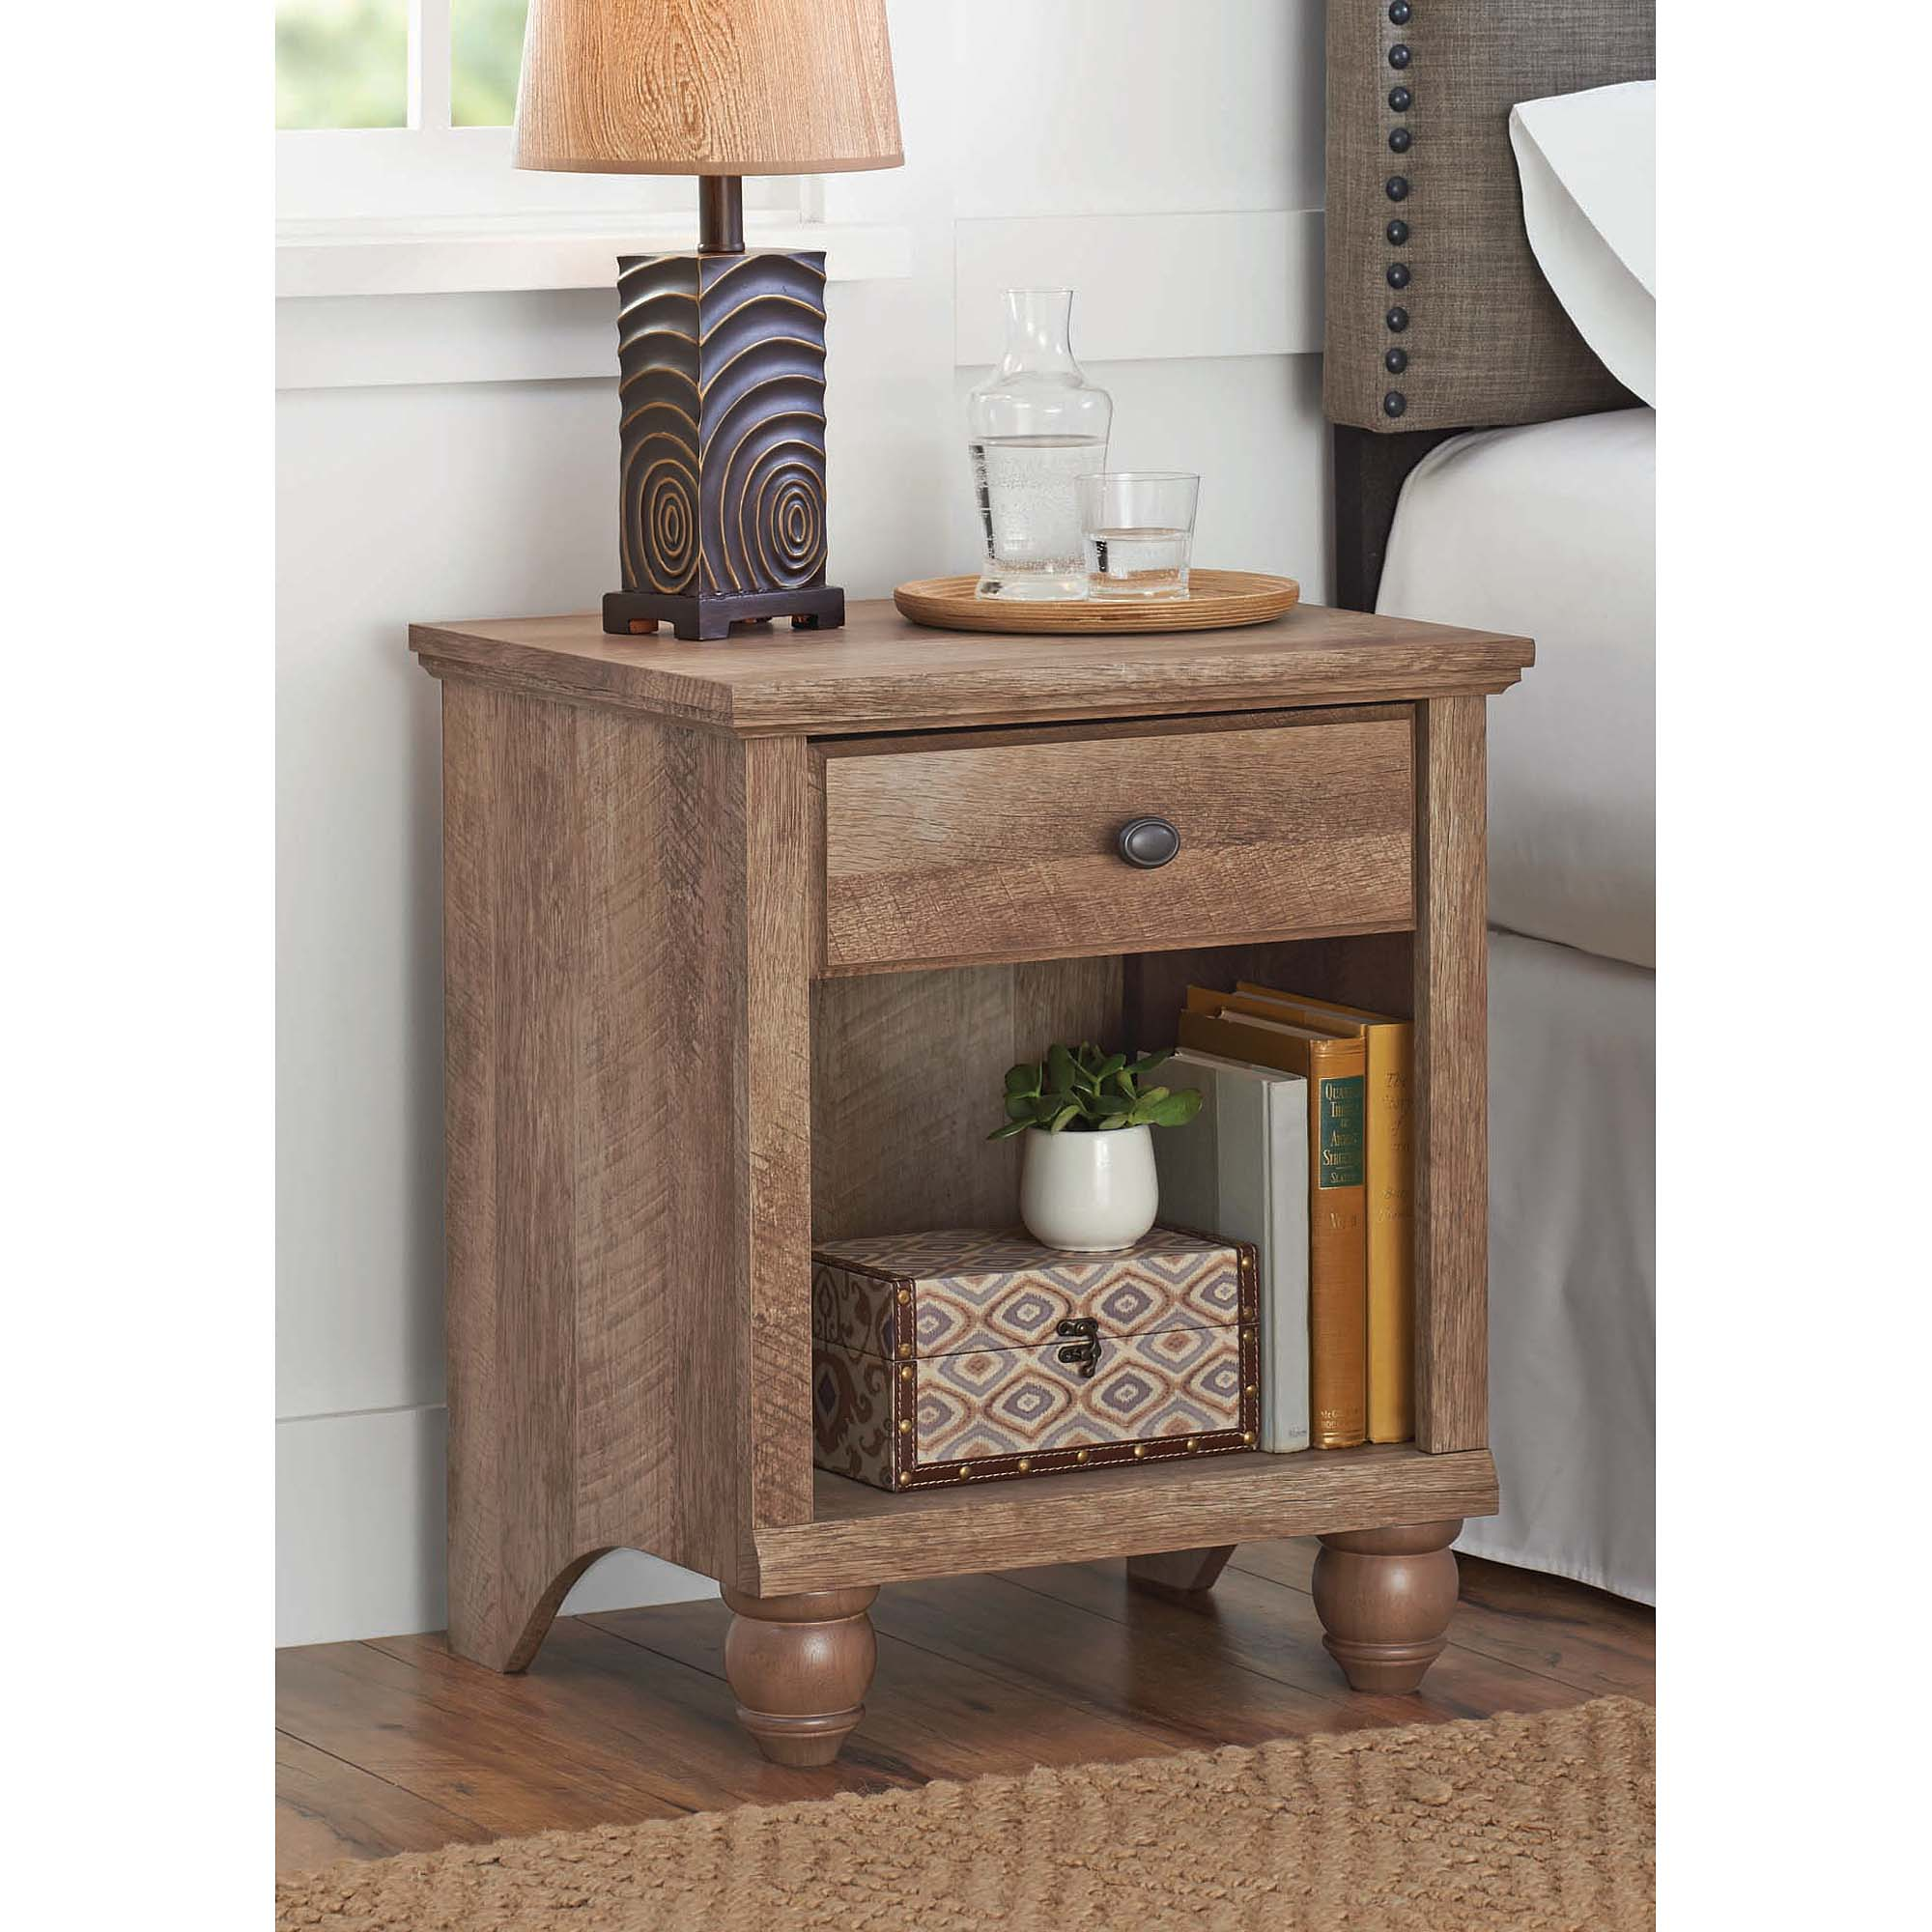 better homes gardens crossmill accent table weathered finish room essentials white bathroom vanities wagon coffee small console black and laminate door threshold hobby lobby